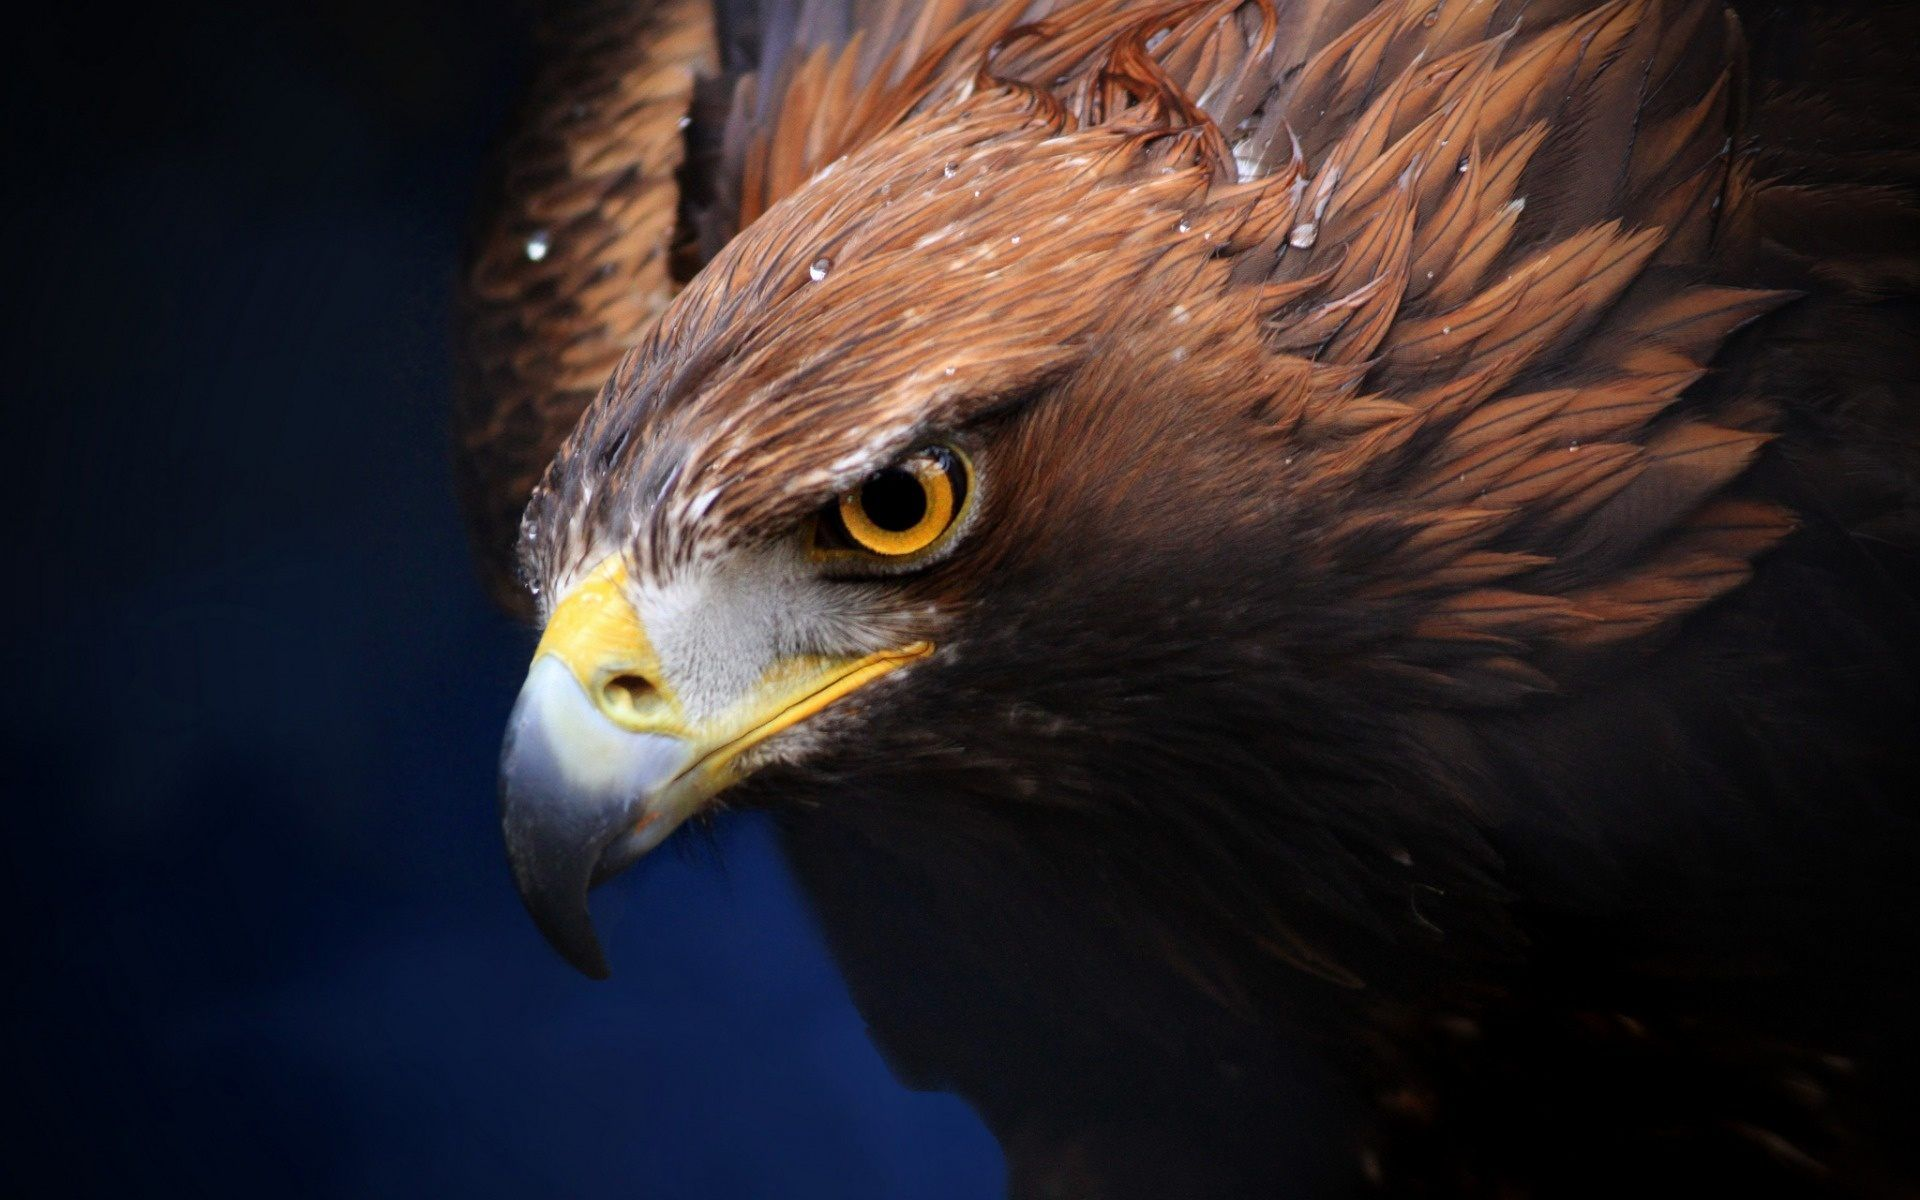 Free Bald Eagle Wallpapers Wallpaper | HD Wallpapers | Pinterest ...